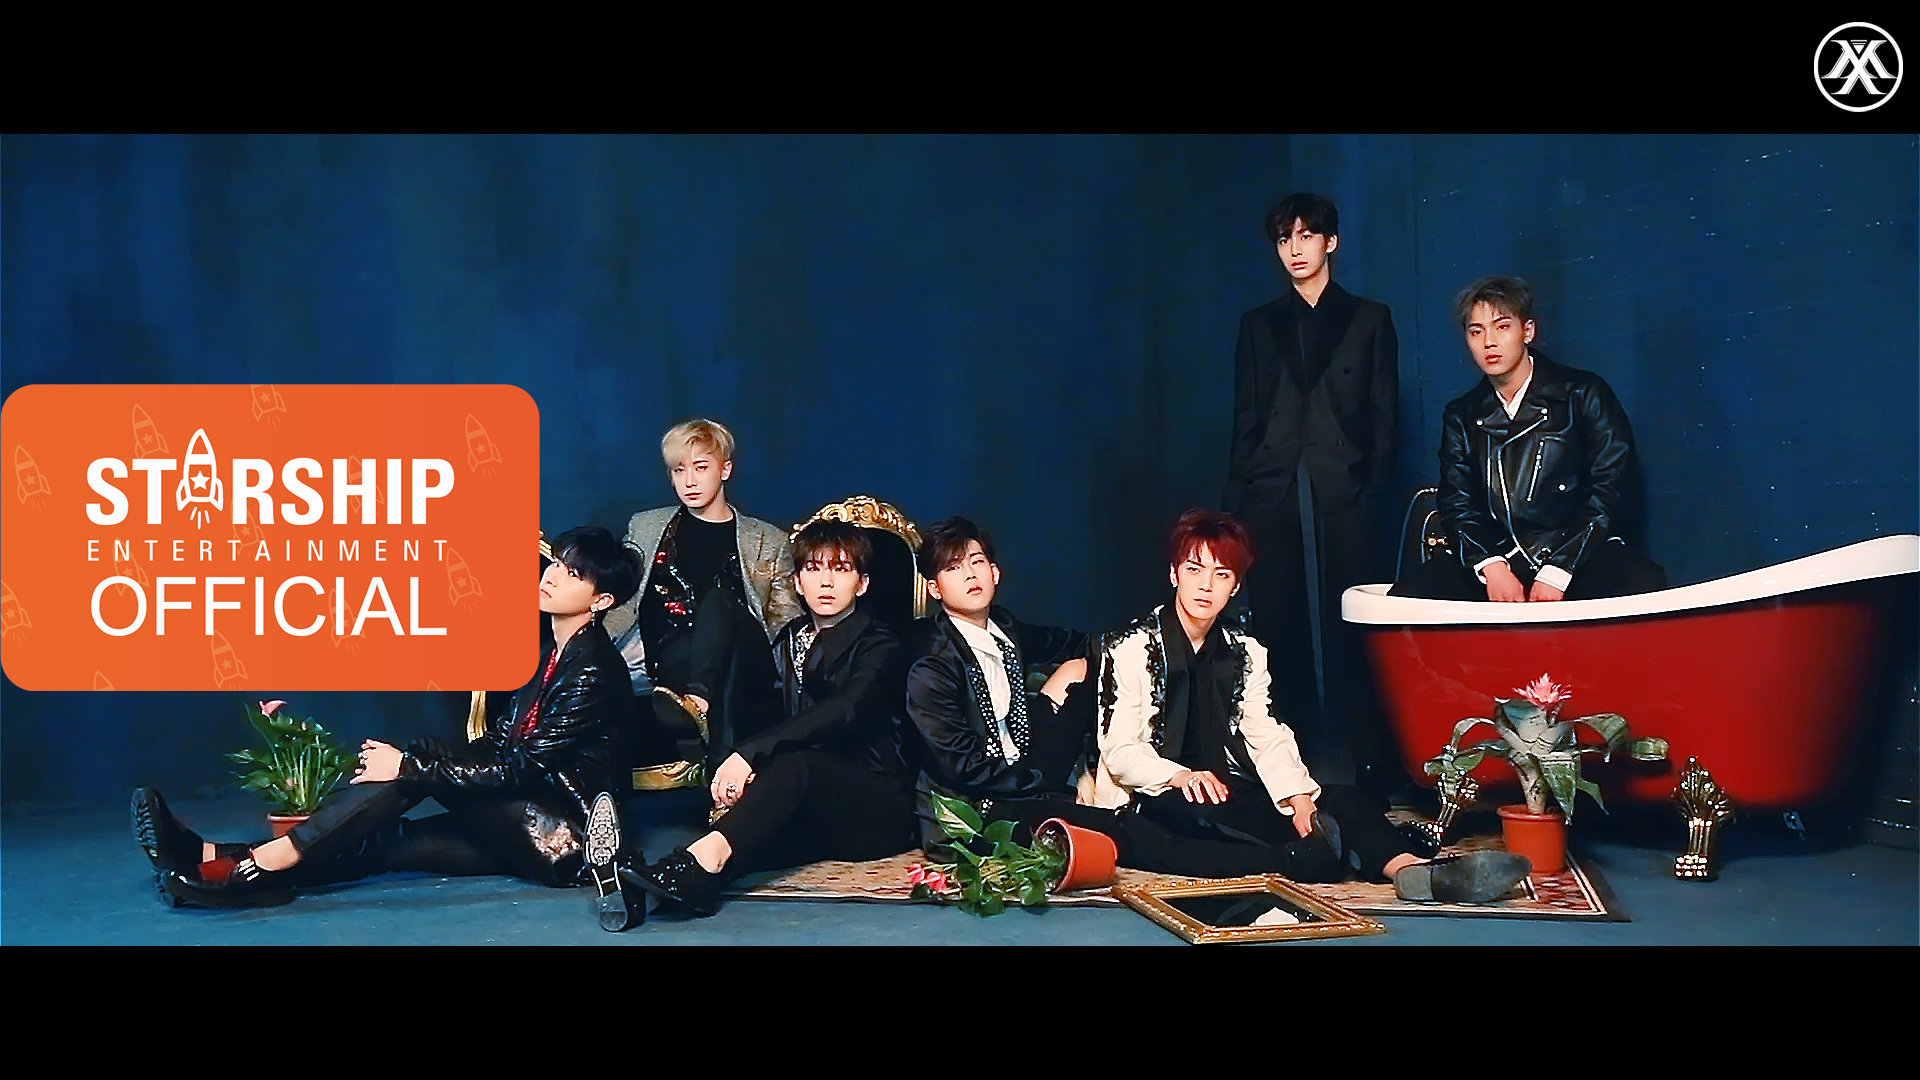 [Making film] 몬스타엑스(MONSTA X)_THE CLAN pt 2.5 Beautiful JACKET